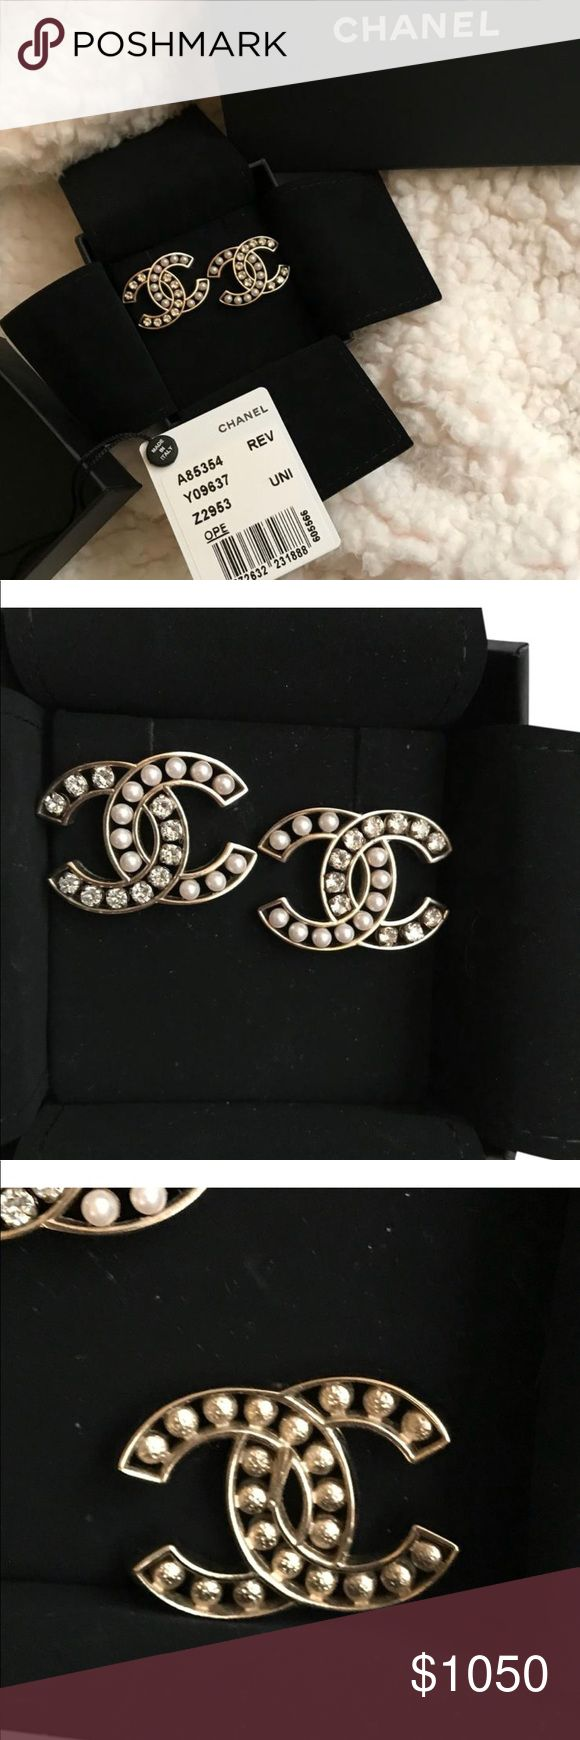 Chanel Earrings😍😍😍 Authentic and beautiful!!!!! Matching earrings in closet as well. Gold toned, white faux pearls and clear stone. Wore twice. Too large for my ears. Comes with box, tag, and velvet protection cover. I'd send receipt but have other purchases on it. Authentic!!! Posh will authenticate. CHANEL Jewelry Earrings